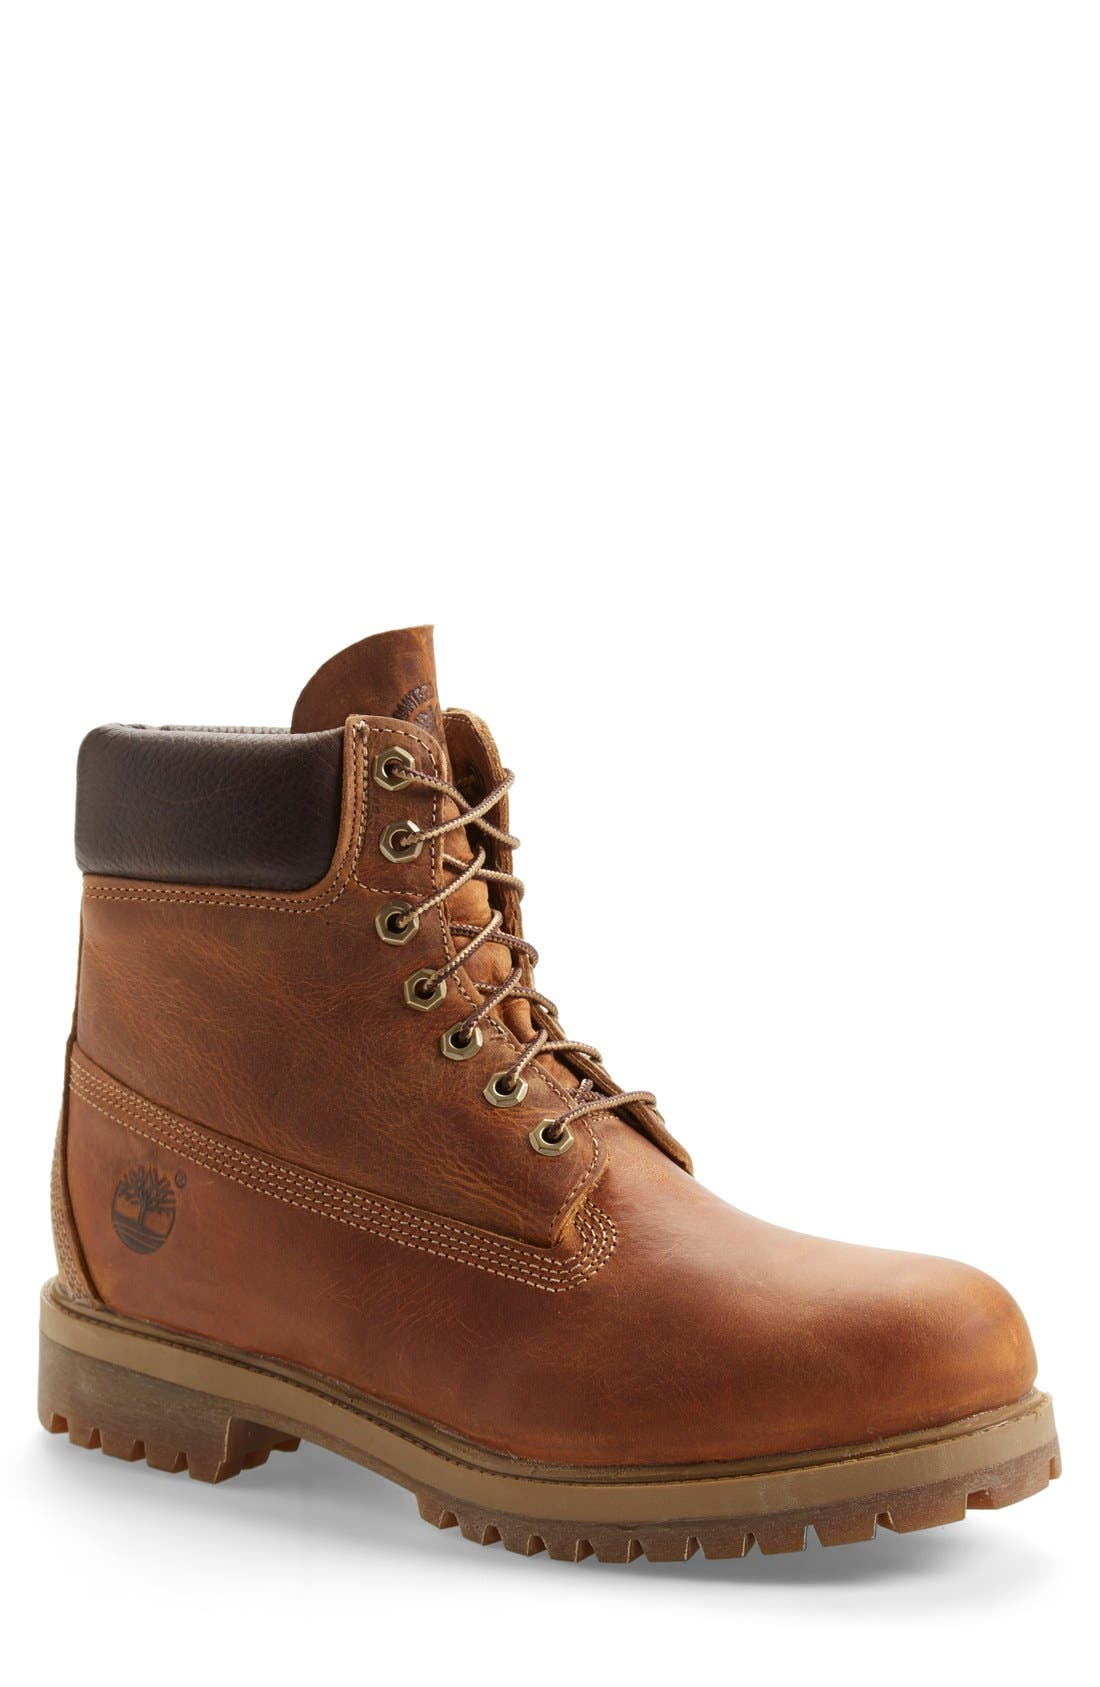 'Premium Heritage' Round Toe Boot,                             Main thumbnail 1, color,                             BURNT ORANGE OILED LEATHER